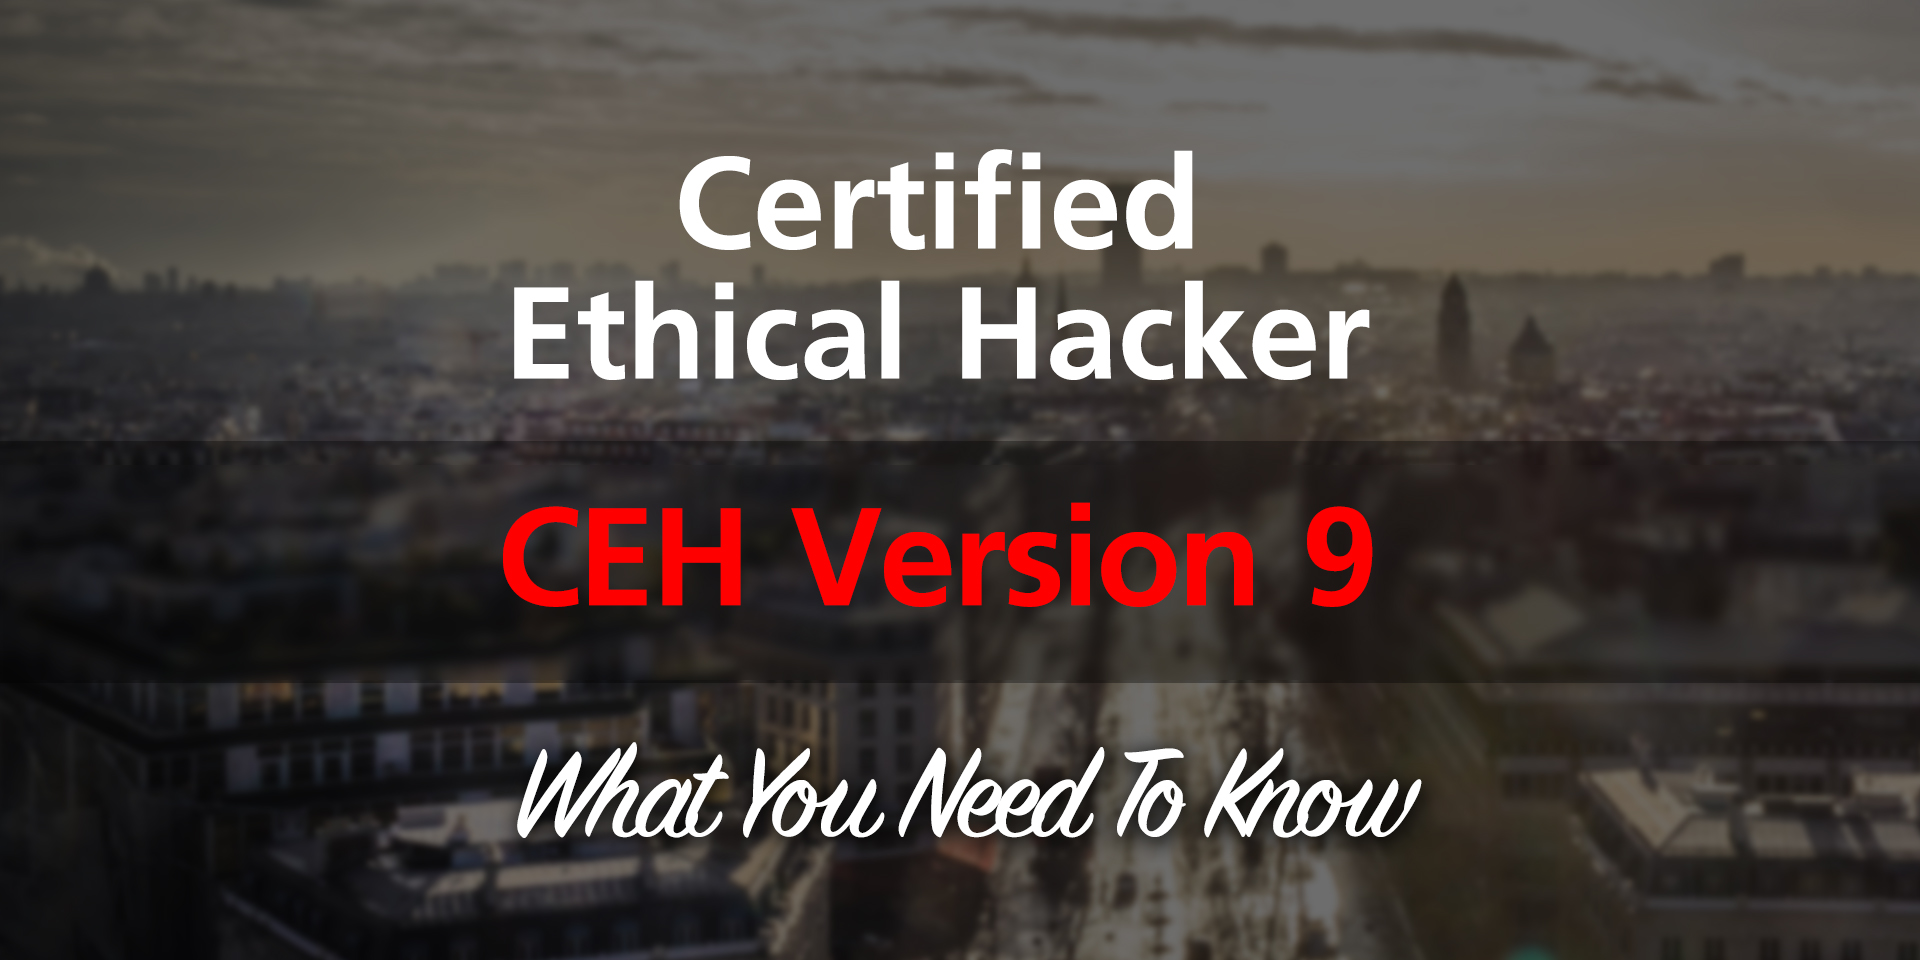 Ceh certified ethical hacker training certification course in ceh certified ethical hacker training certification course in lahore pakistan student shelter in computers xflitez Image collections